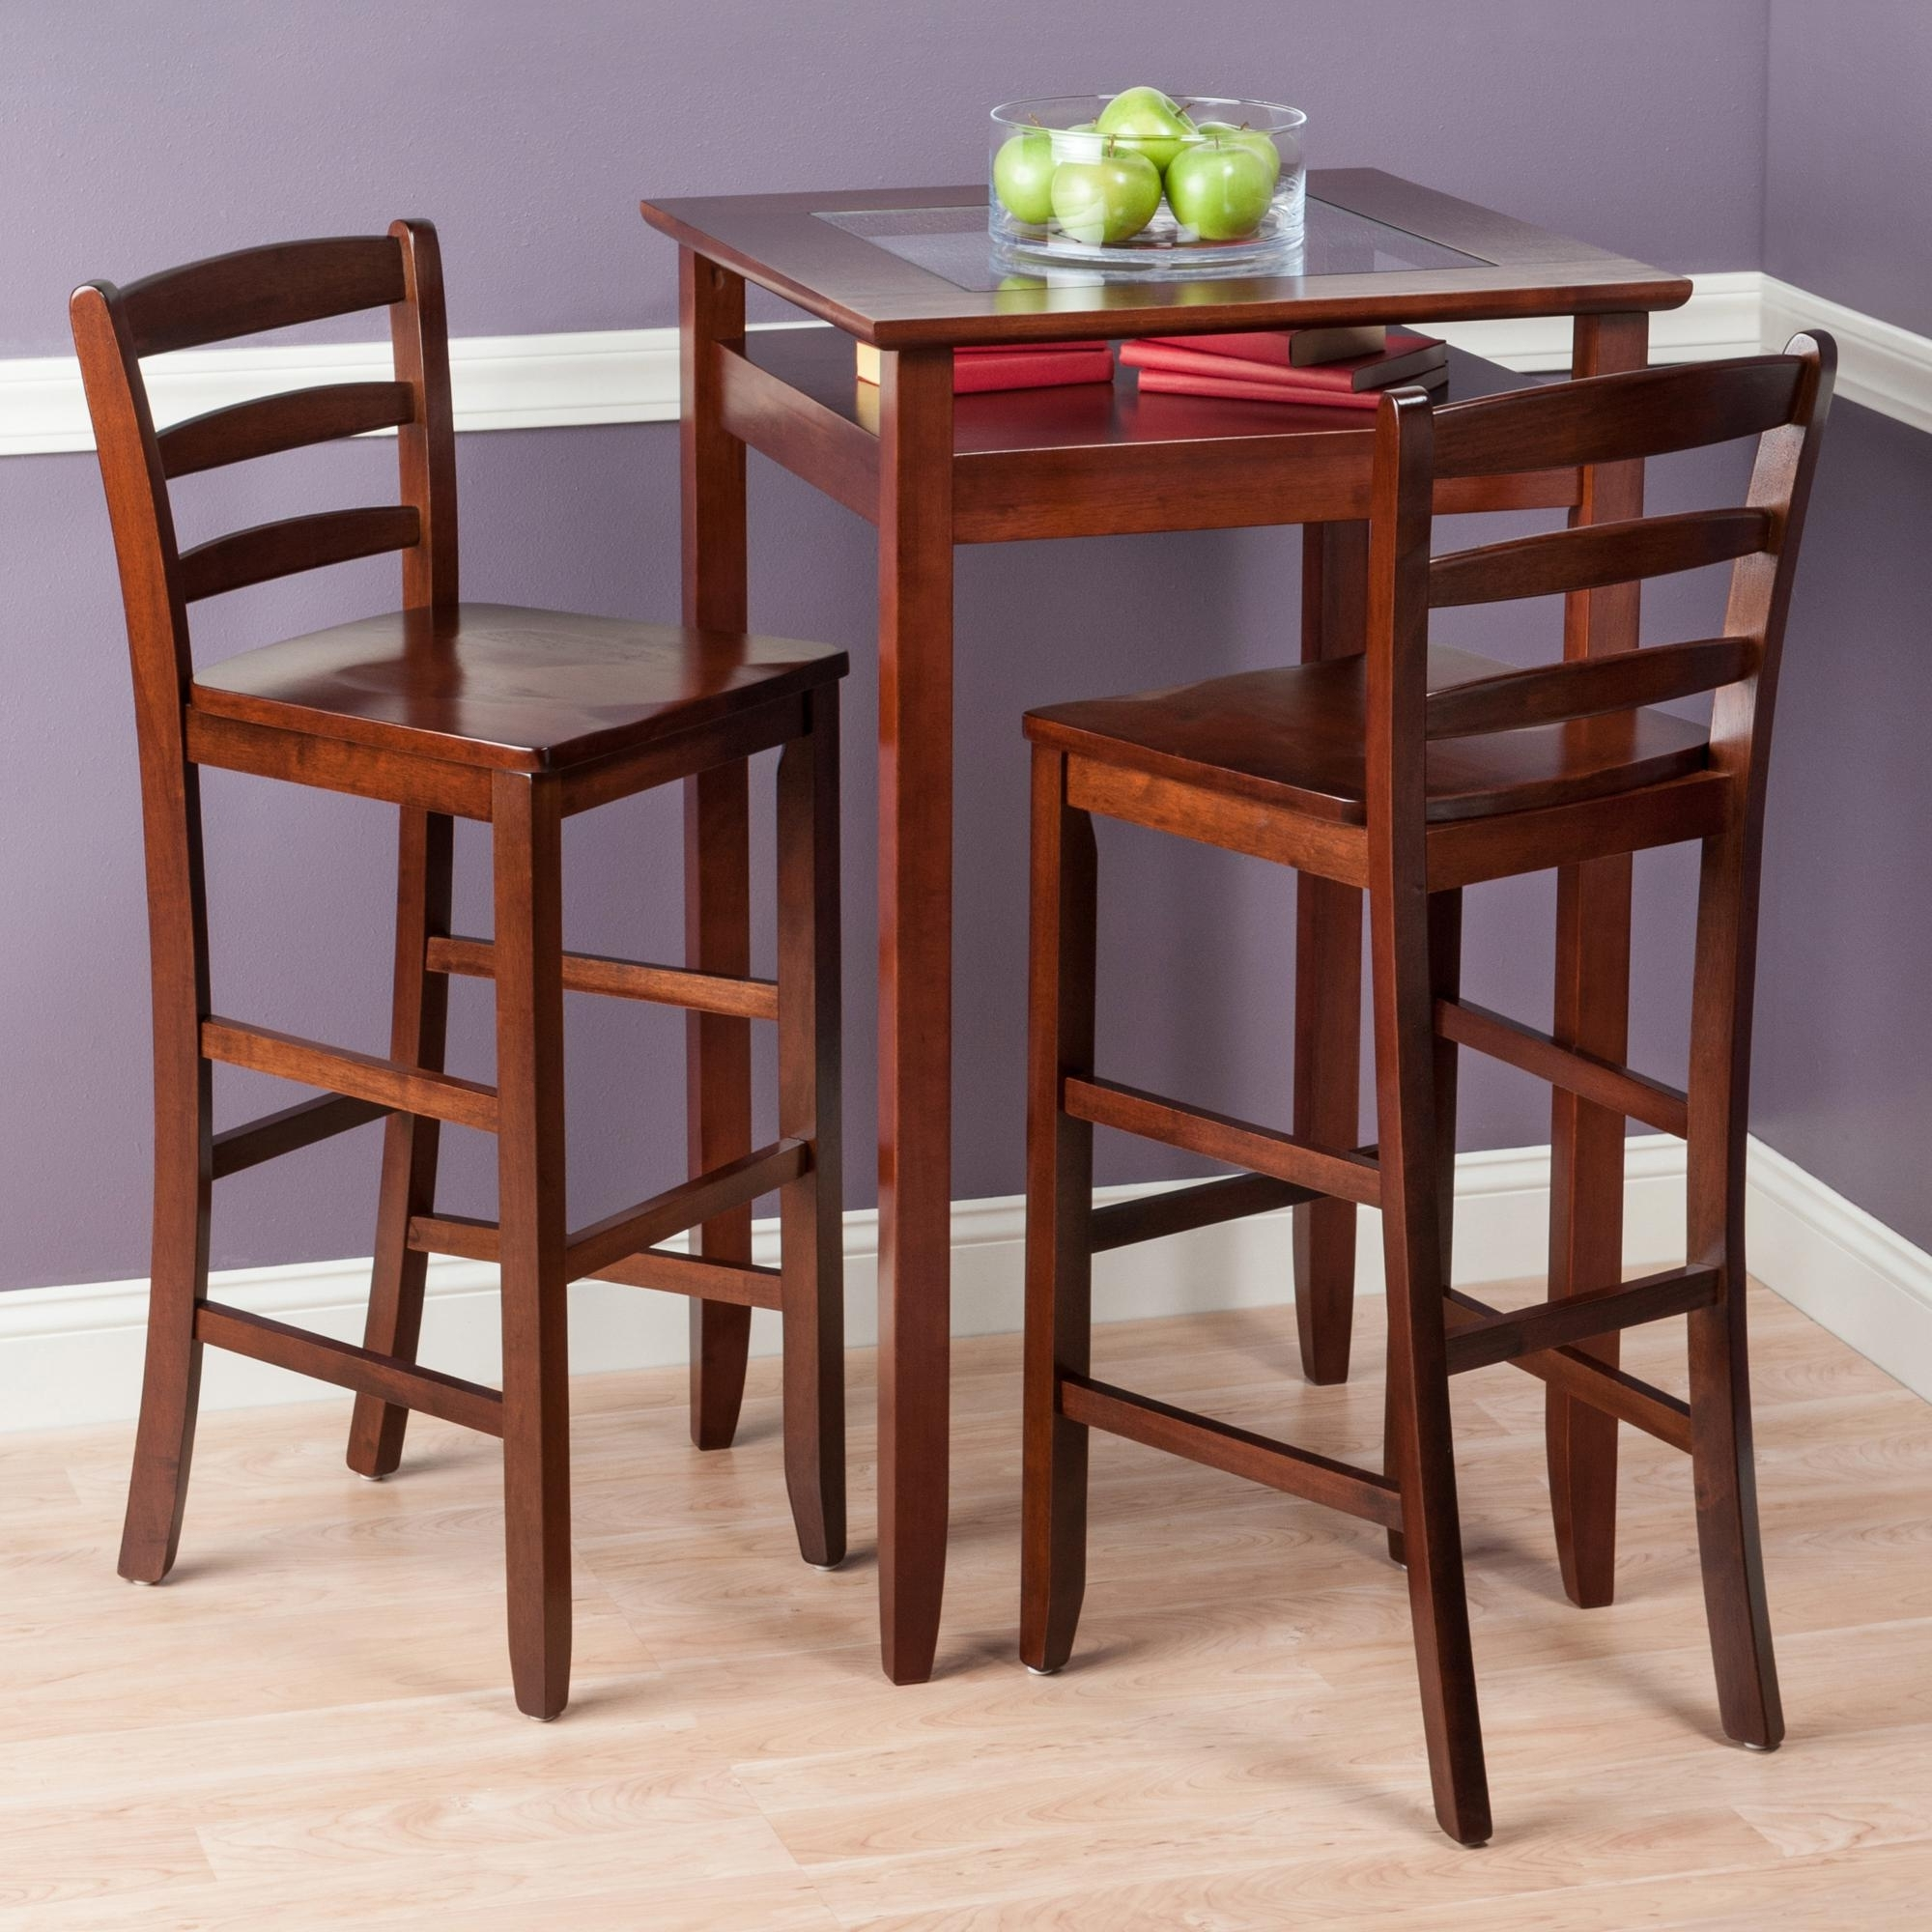 2017 Dining Table Sets For 2 within Amazon: Winsome Wood Halo 3 Piece Pub Table Set With 2 Ladder